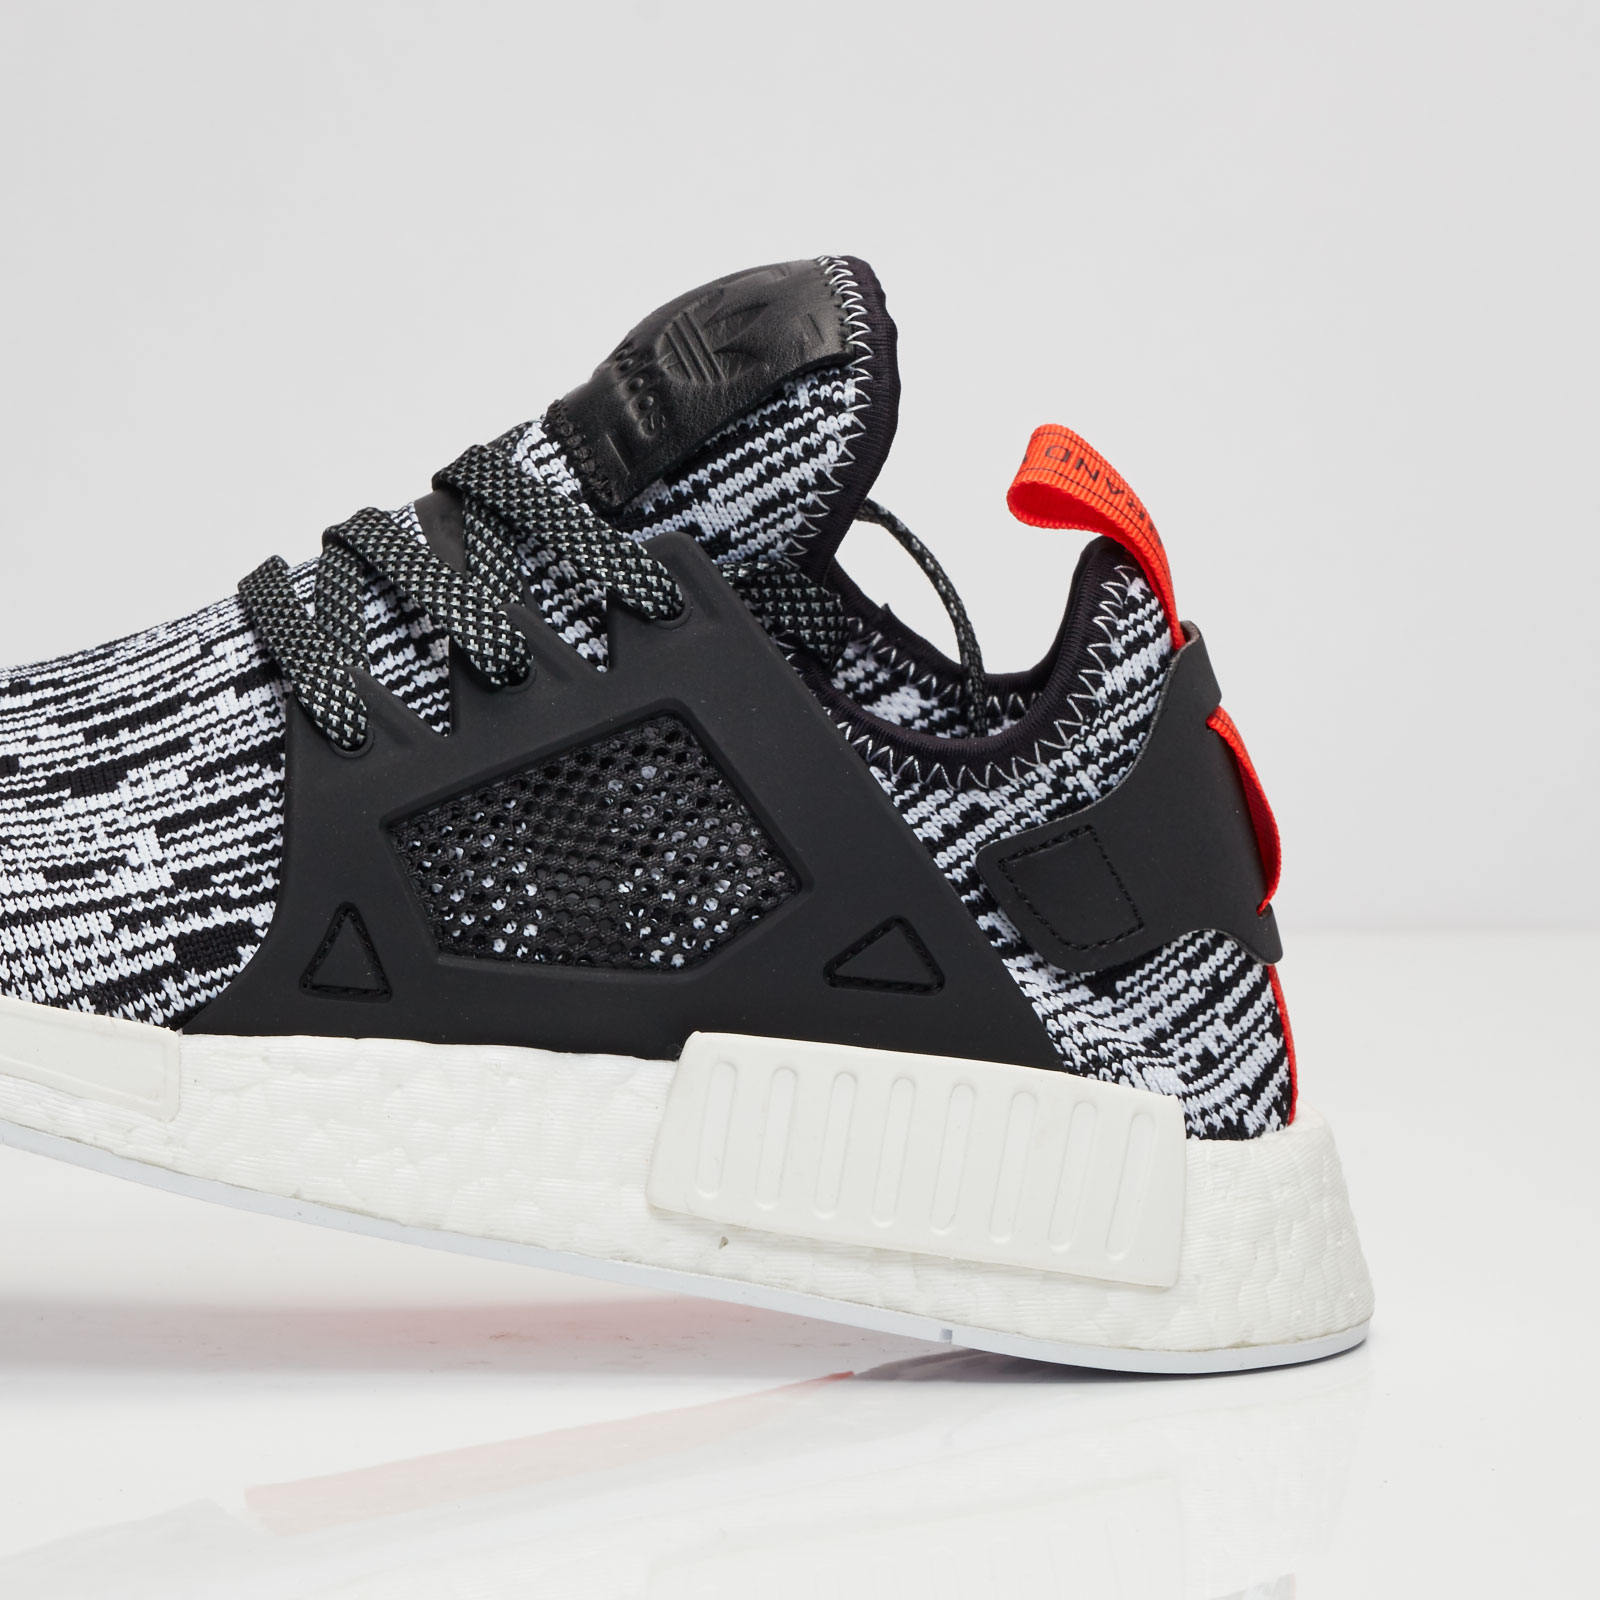 separation shoes 9a64f 3c5fa adidas NMD_XR1 PK - S32216 - Sneakersnstuff | sneakers ...